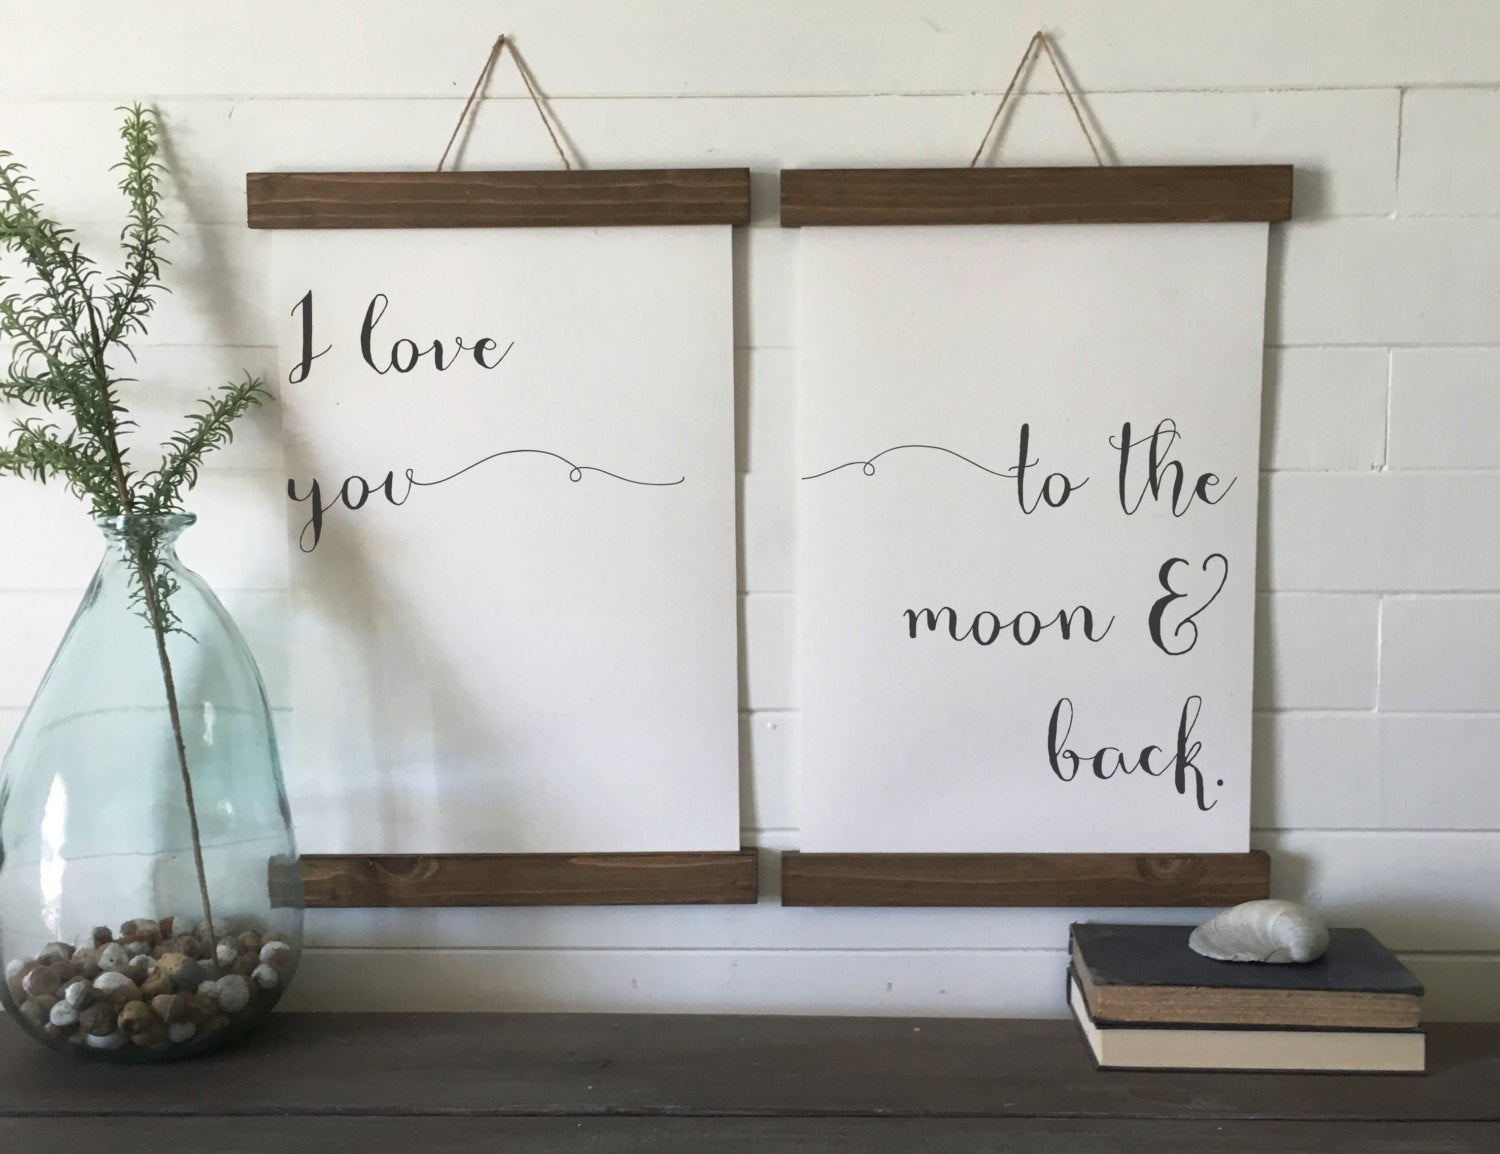 I love you to the moon and back/canvas art print/wood sign/canvas print/wall decor/set of 2/wall art